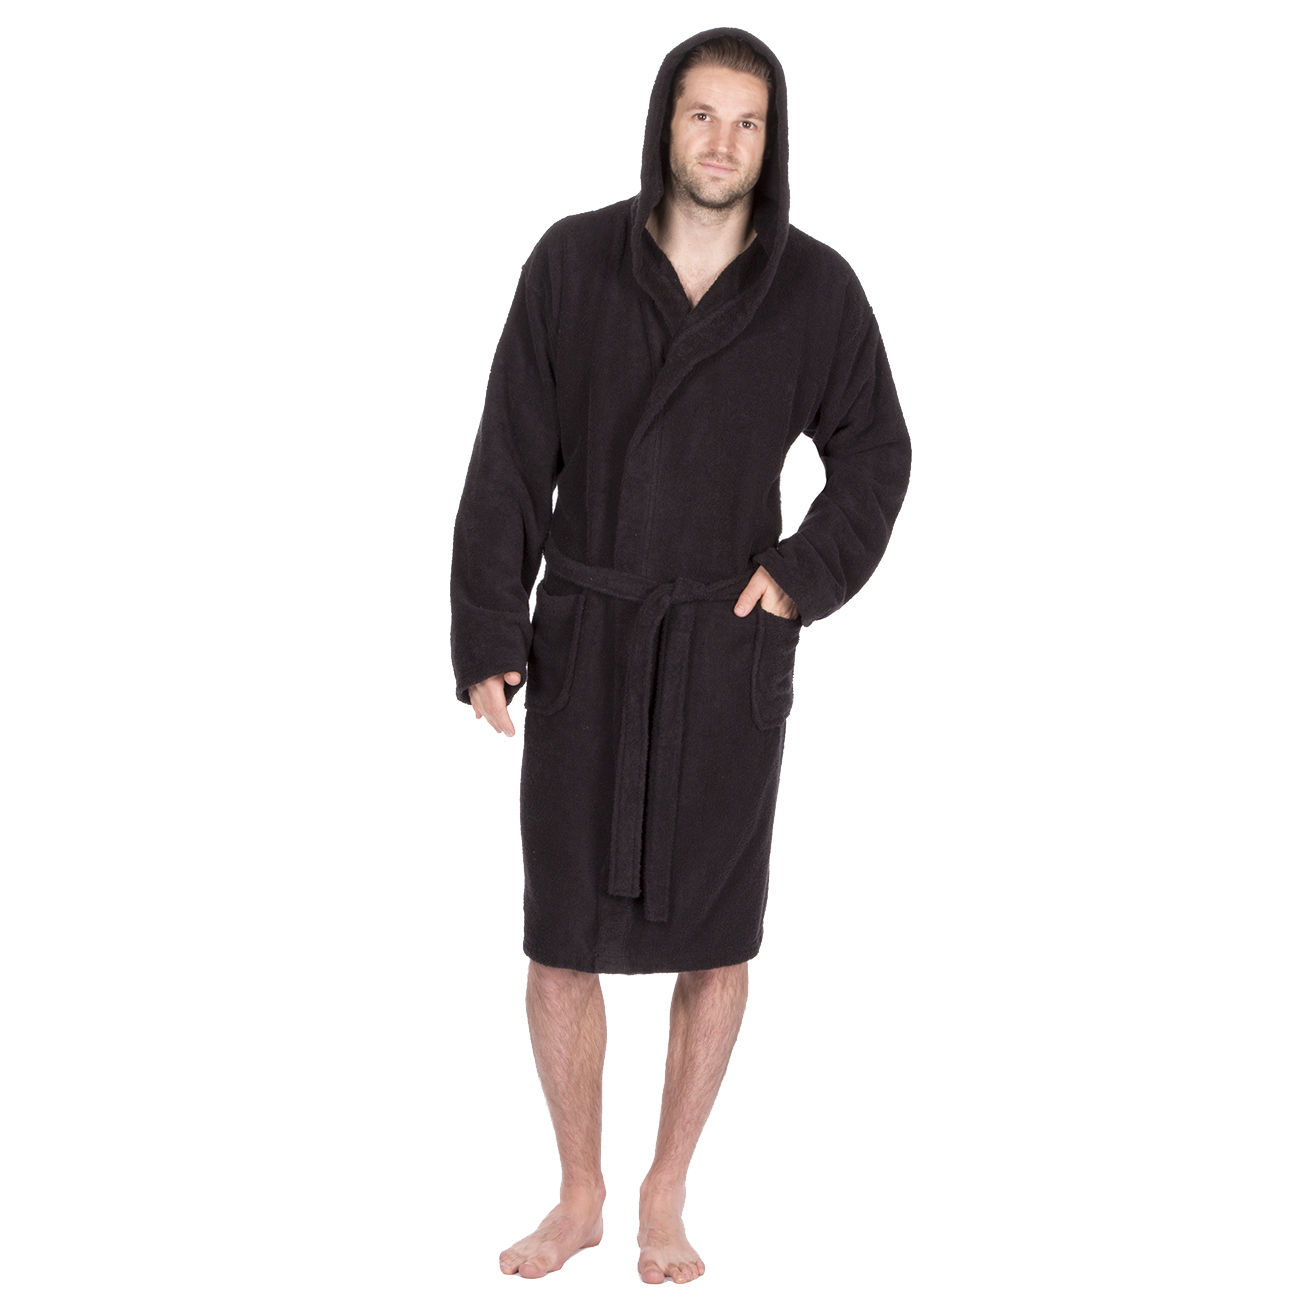 mens deluxe luxury cotton soft terry cloth bath spa robe. Black Bedroom Furniture Sets. Home Design Ideas